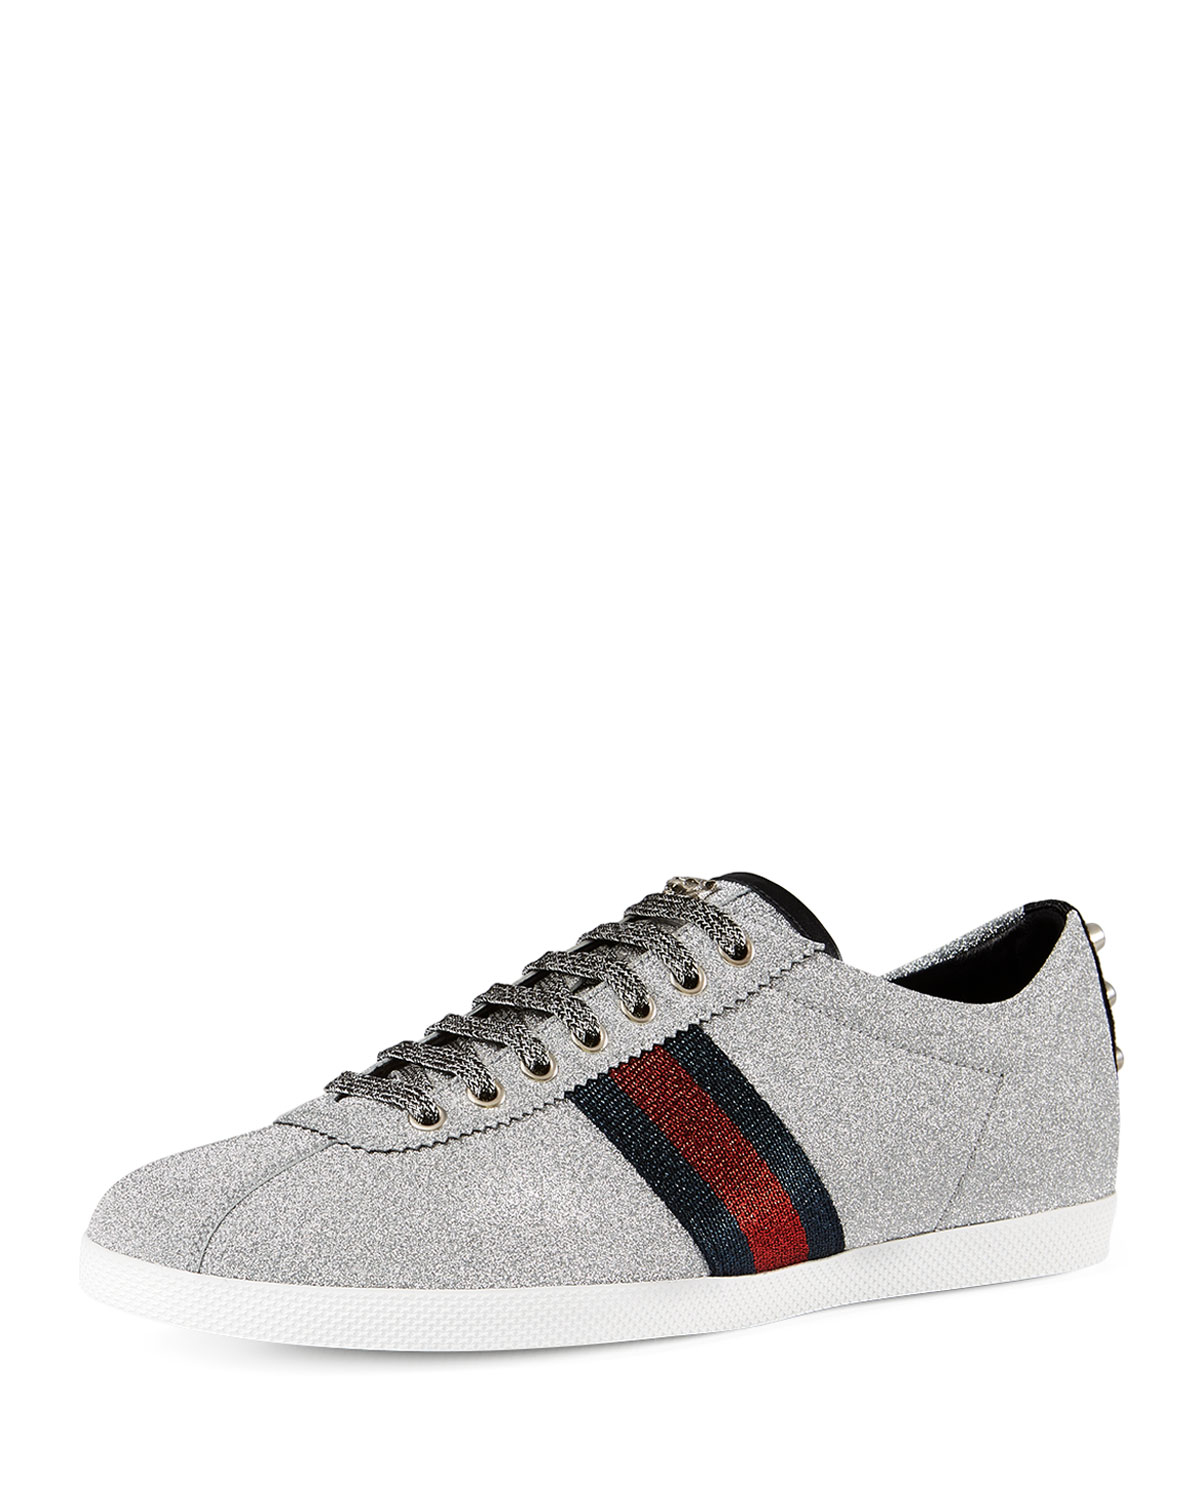 gucci bambi web low top sneaker with stud detail in metallic for men save 10 lyst. Black Bedroom Furniture Sets. Home Design Ideas